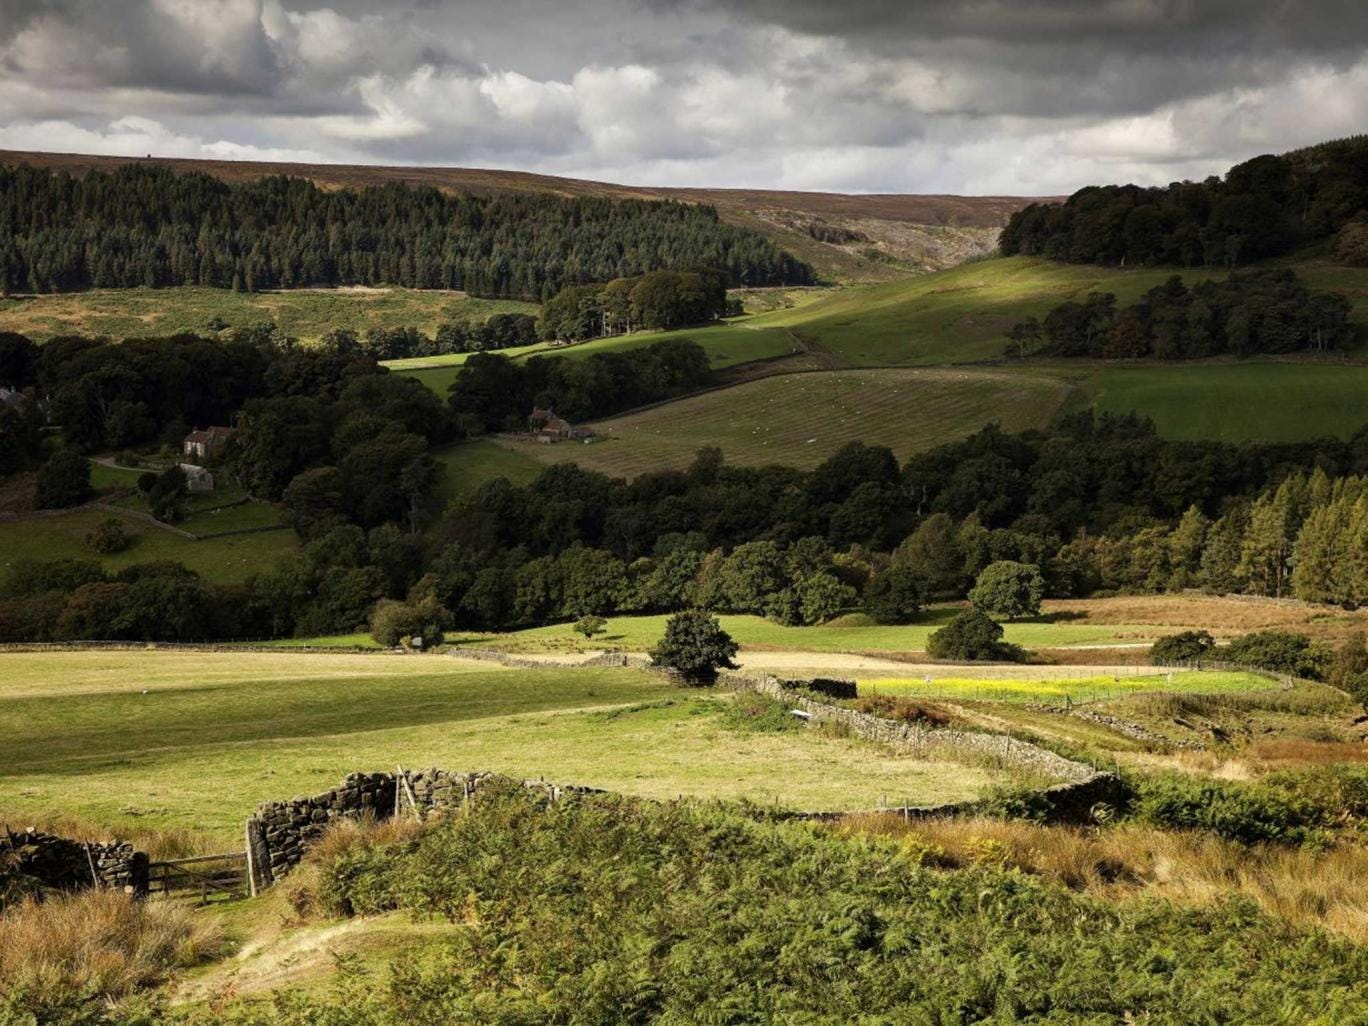 Much loved: The North York Moors are meant to be protected